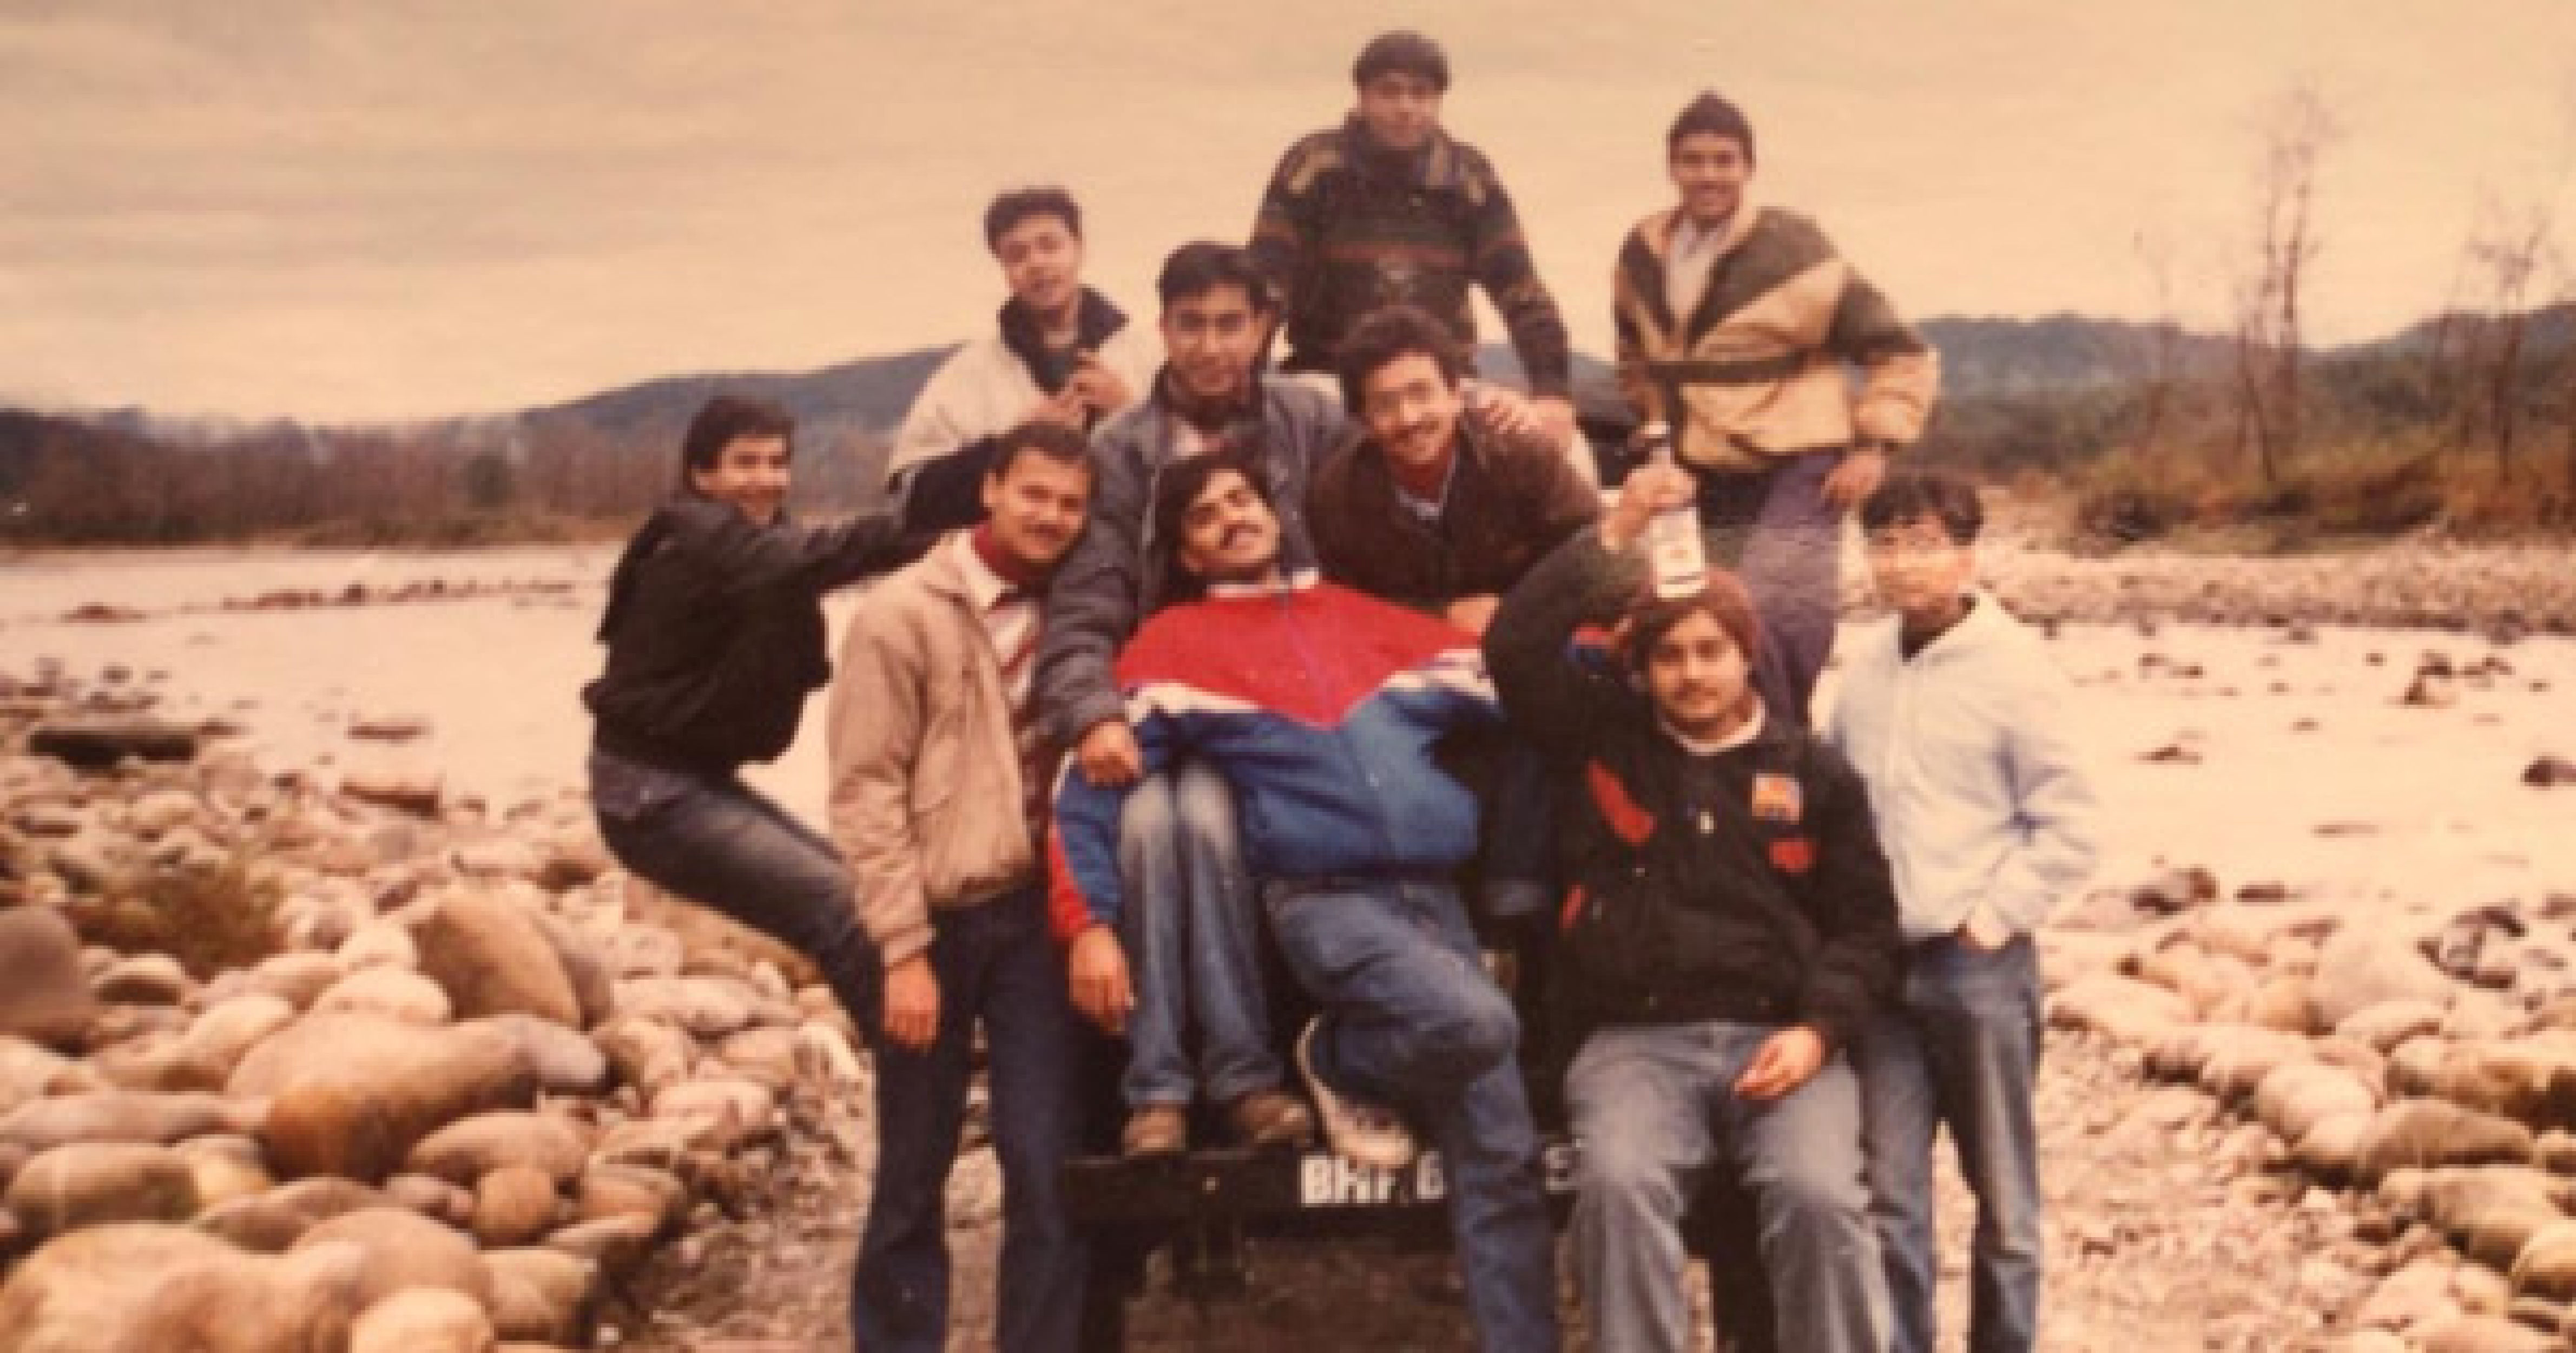 Trip to hill station